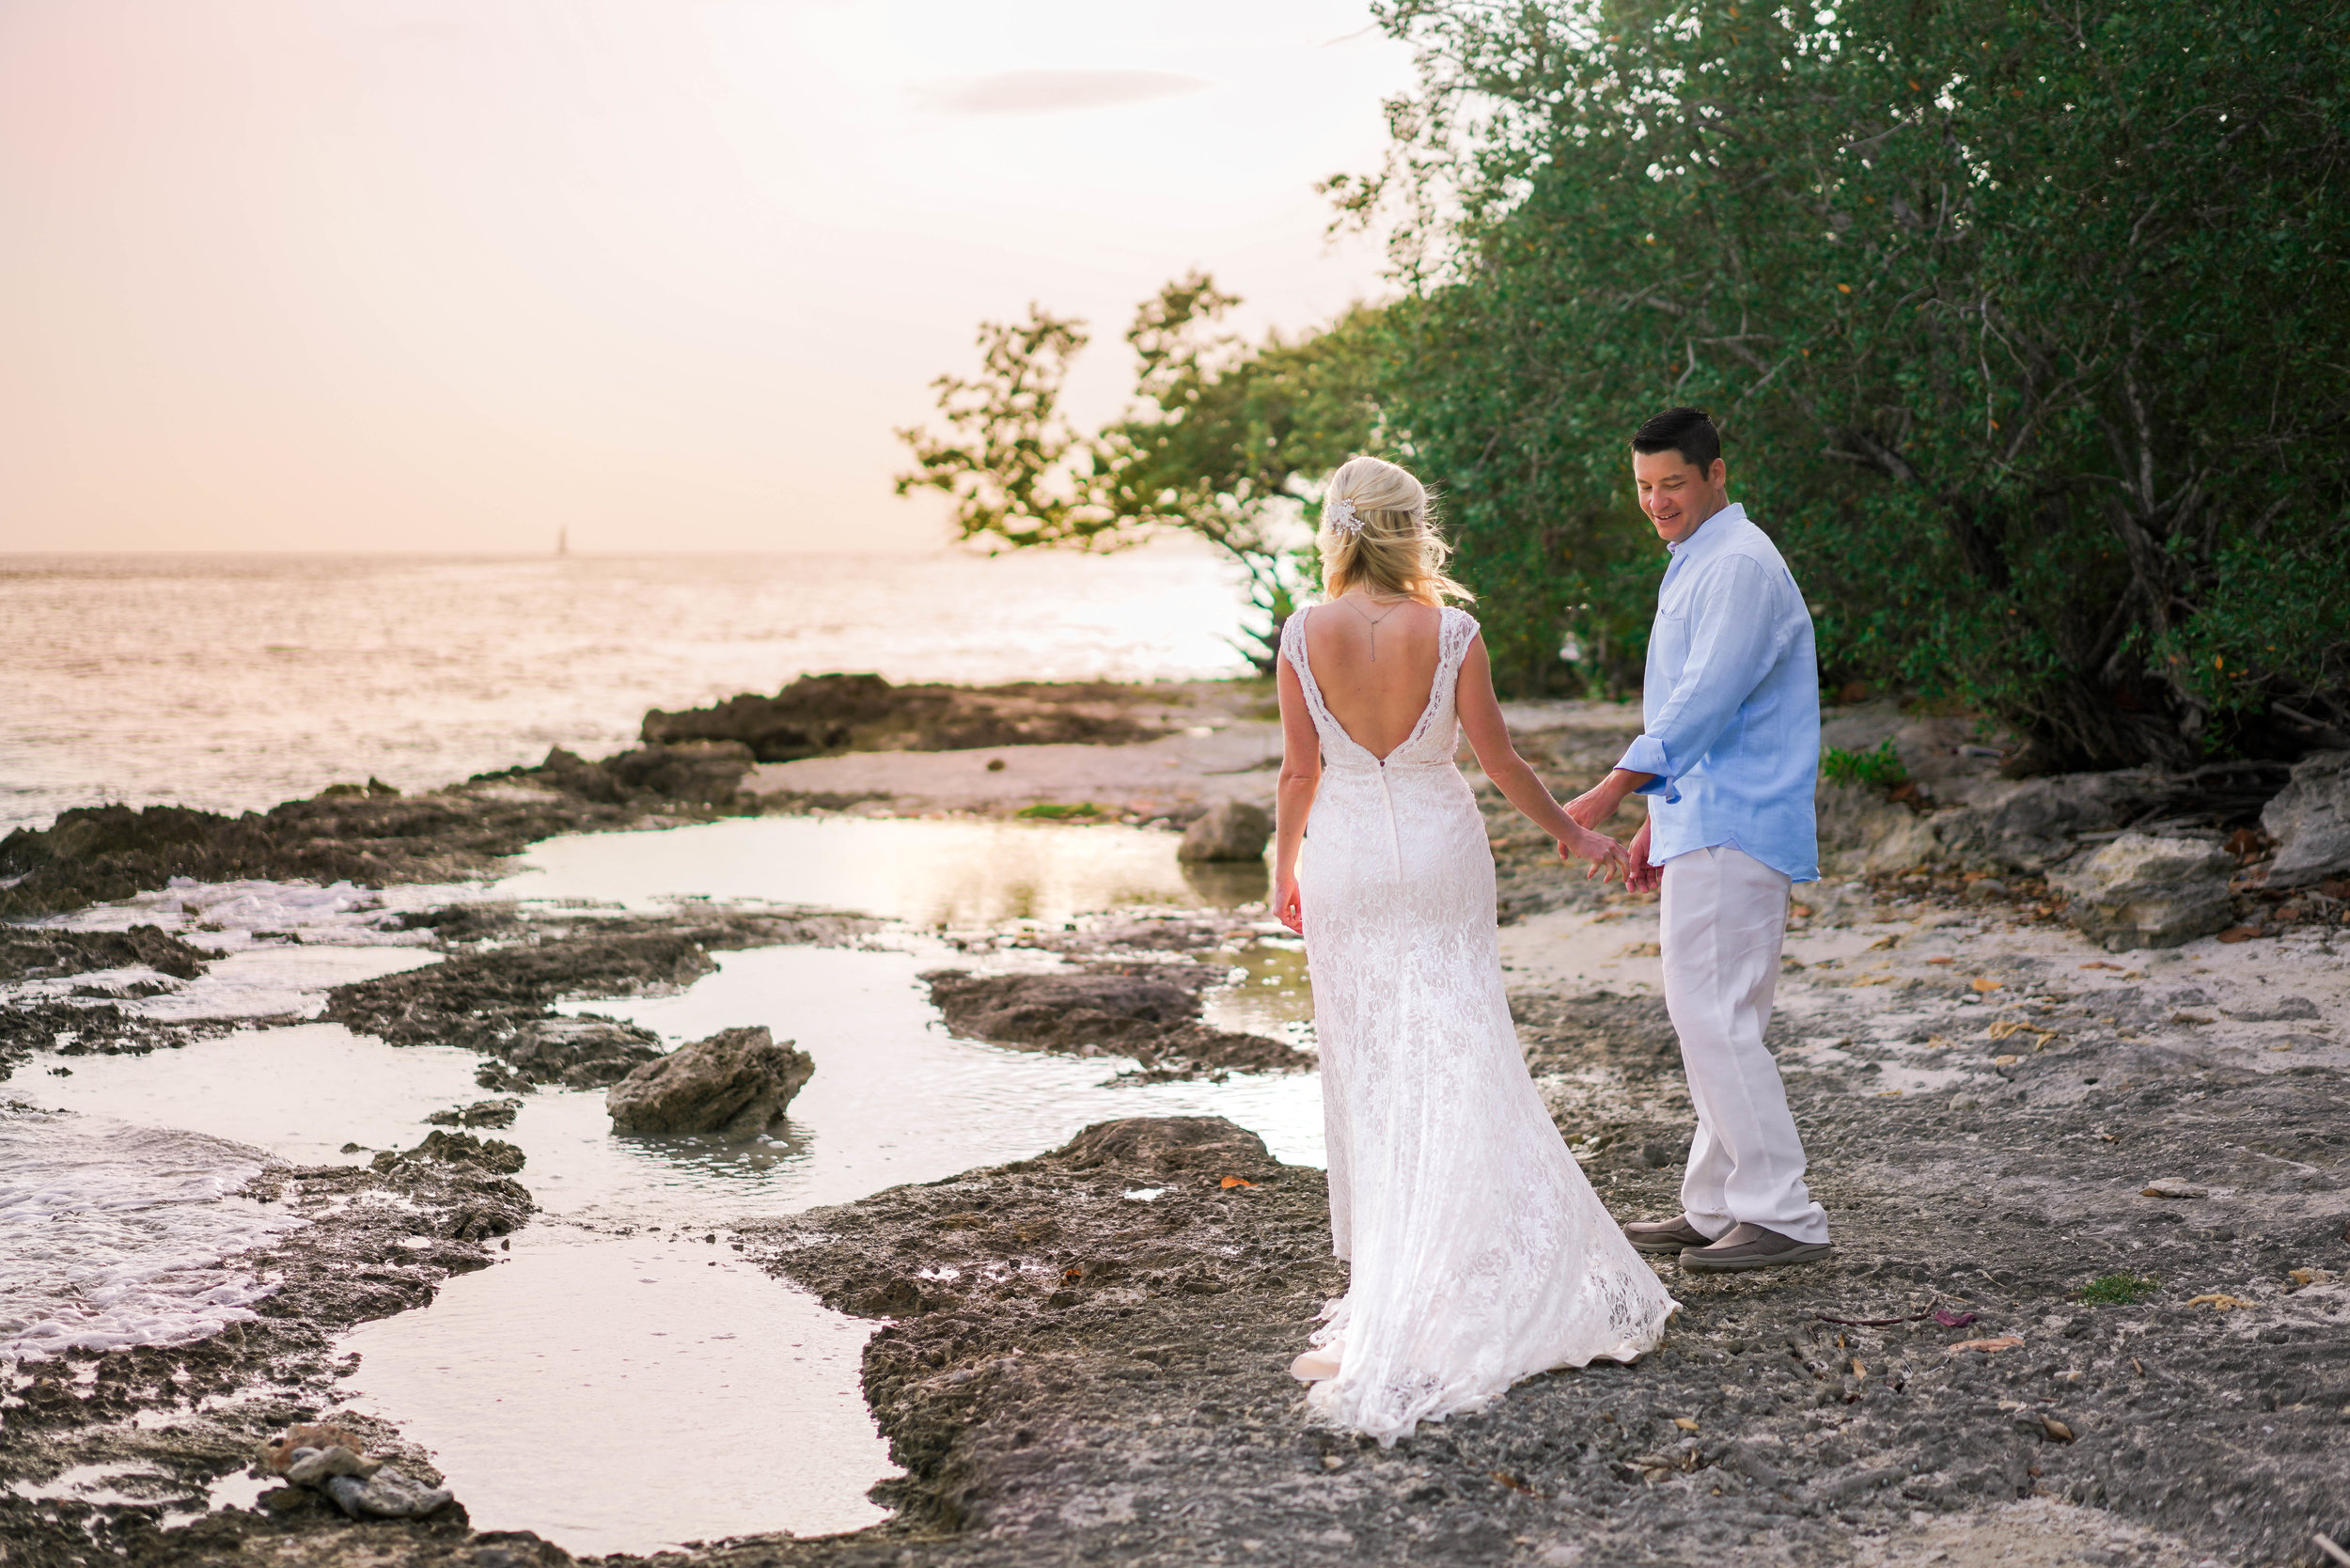 Kendall & Keith | Dominican Republic